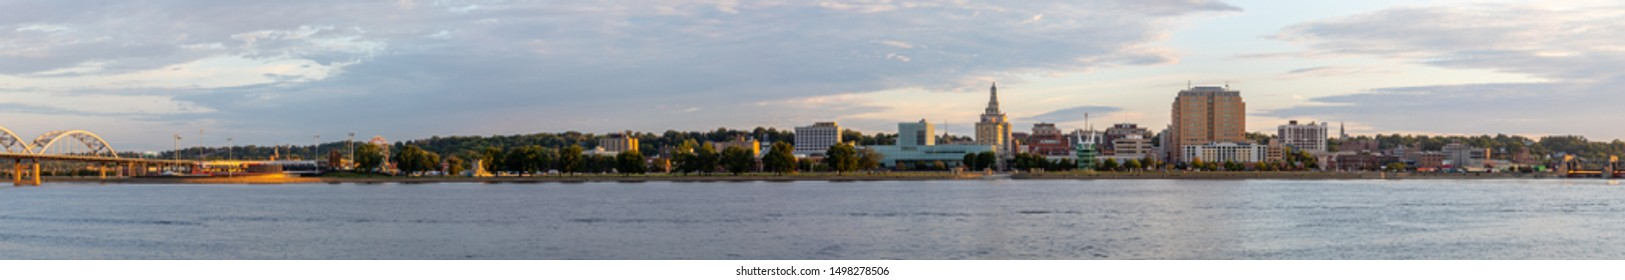 Davenport, in the state of Iowa, United States Of America, as seen across the Mississippi River